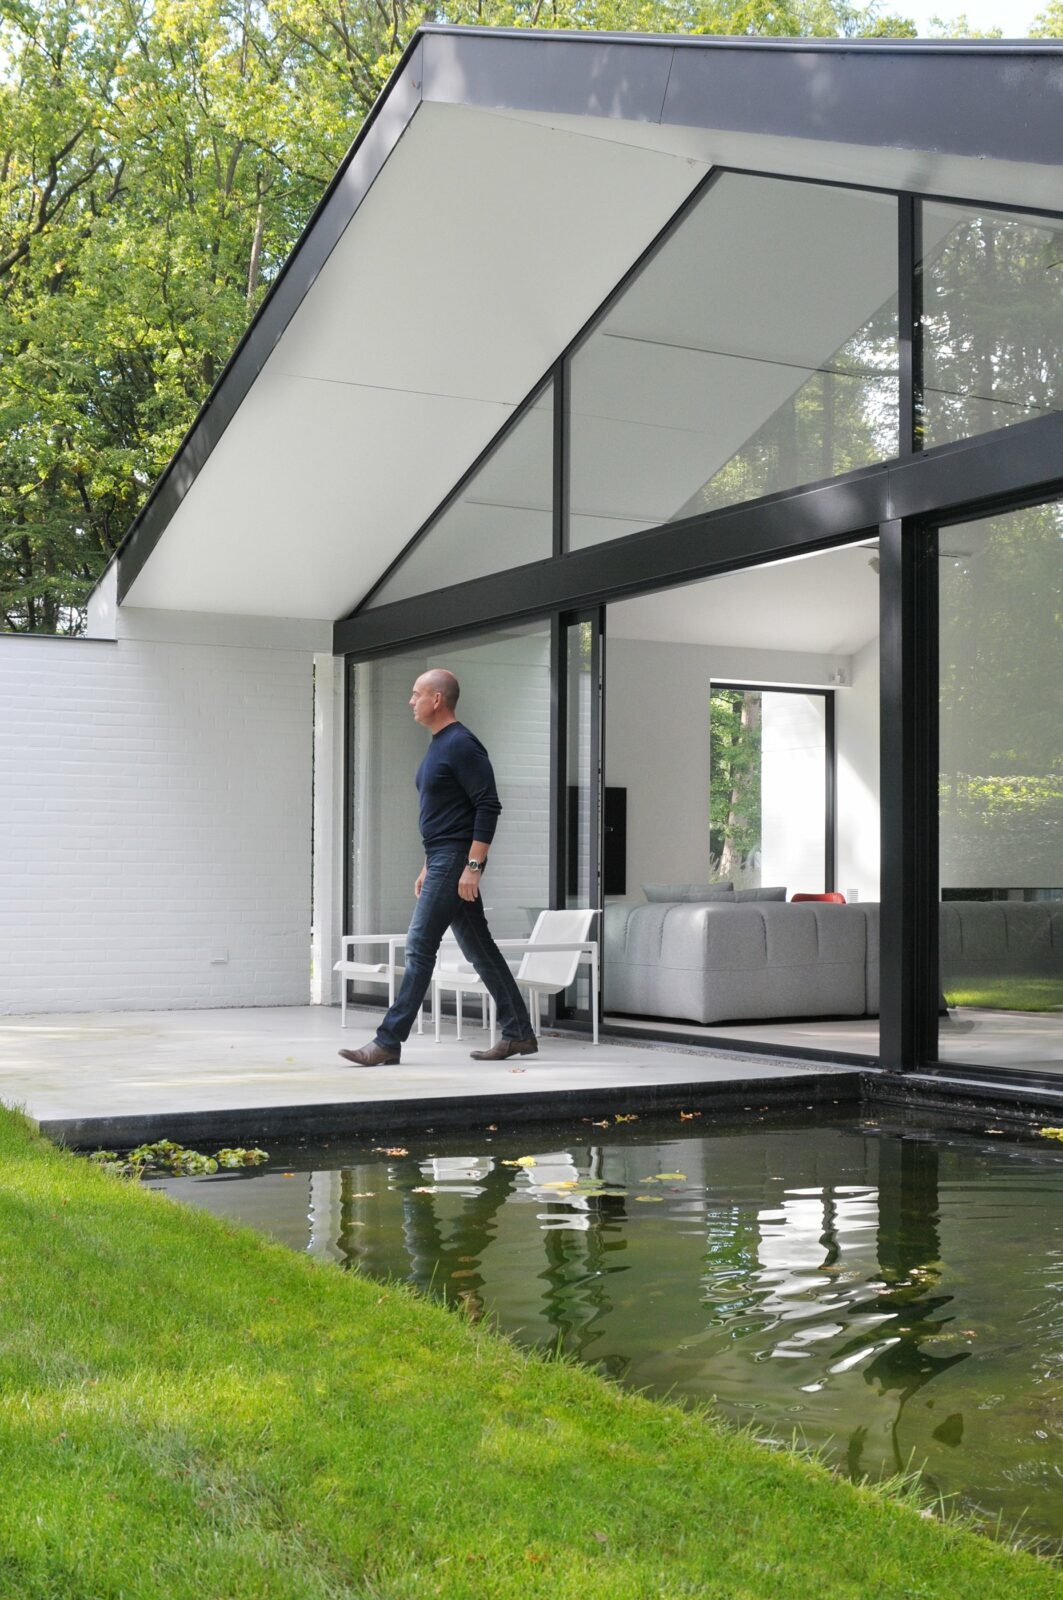 https://www.artifix.be/wp-content/uploads/2019/06/architectuur-vijver-tuin.jpg